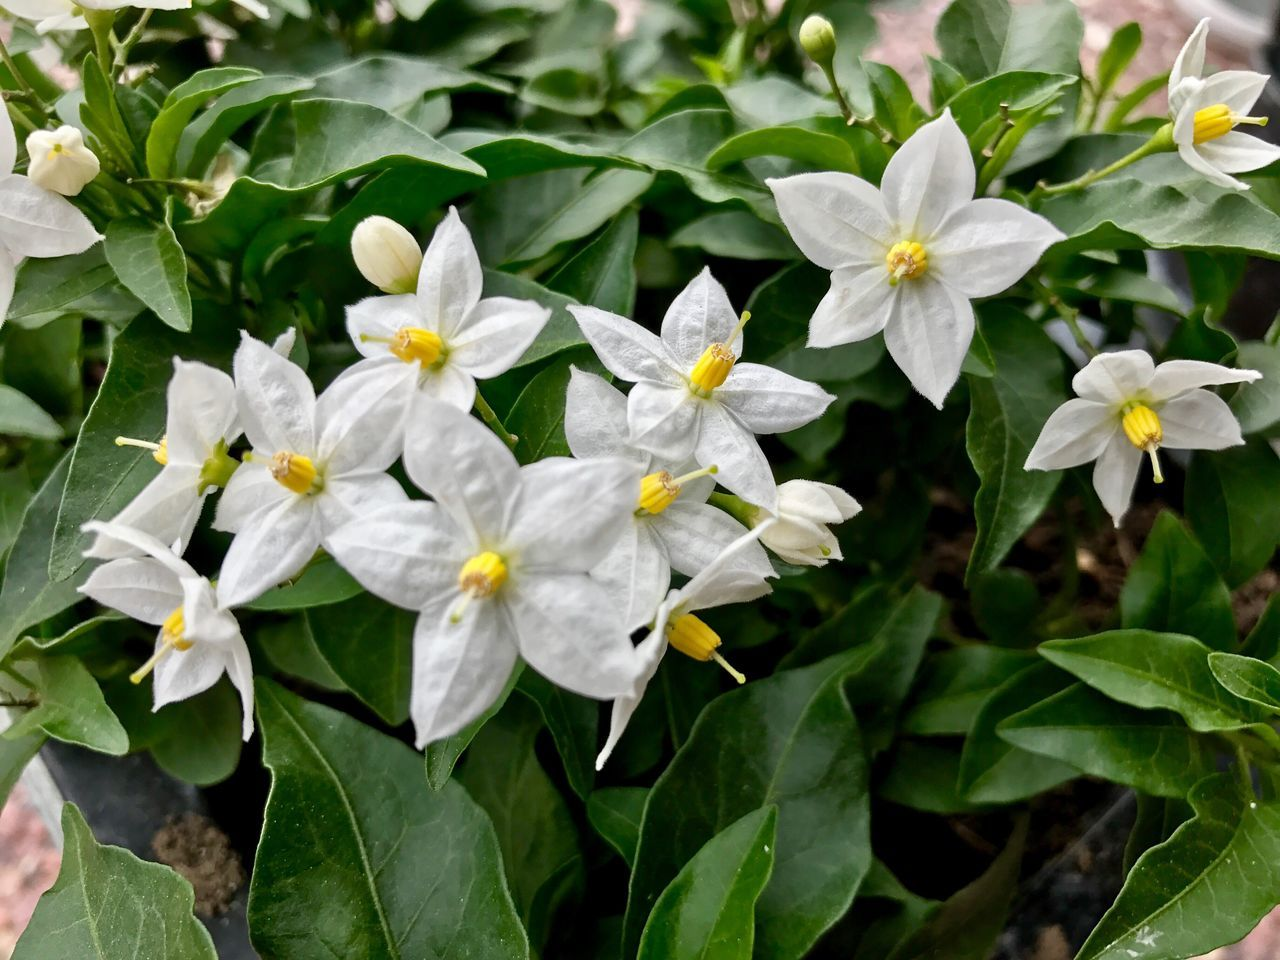 Flower Growth Leaf Petal Nature Plant Blooming Freshness Beauty In Nature Fragility No People Flower Head Outdoors Close-up Day Jasmine Jasmine Flower